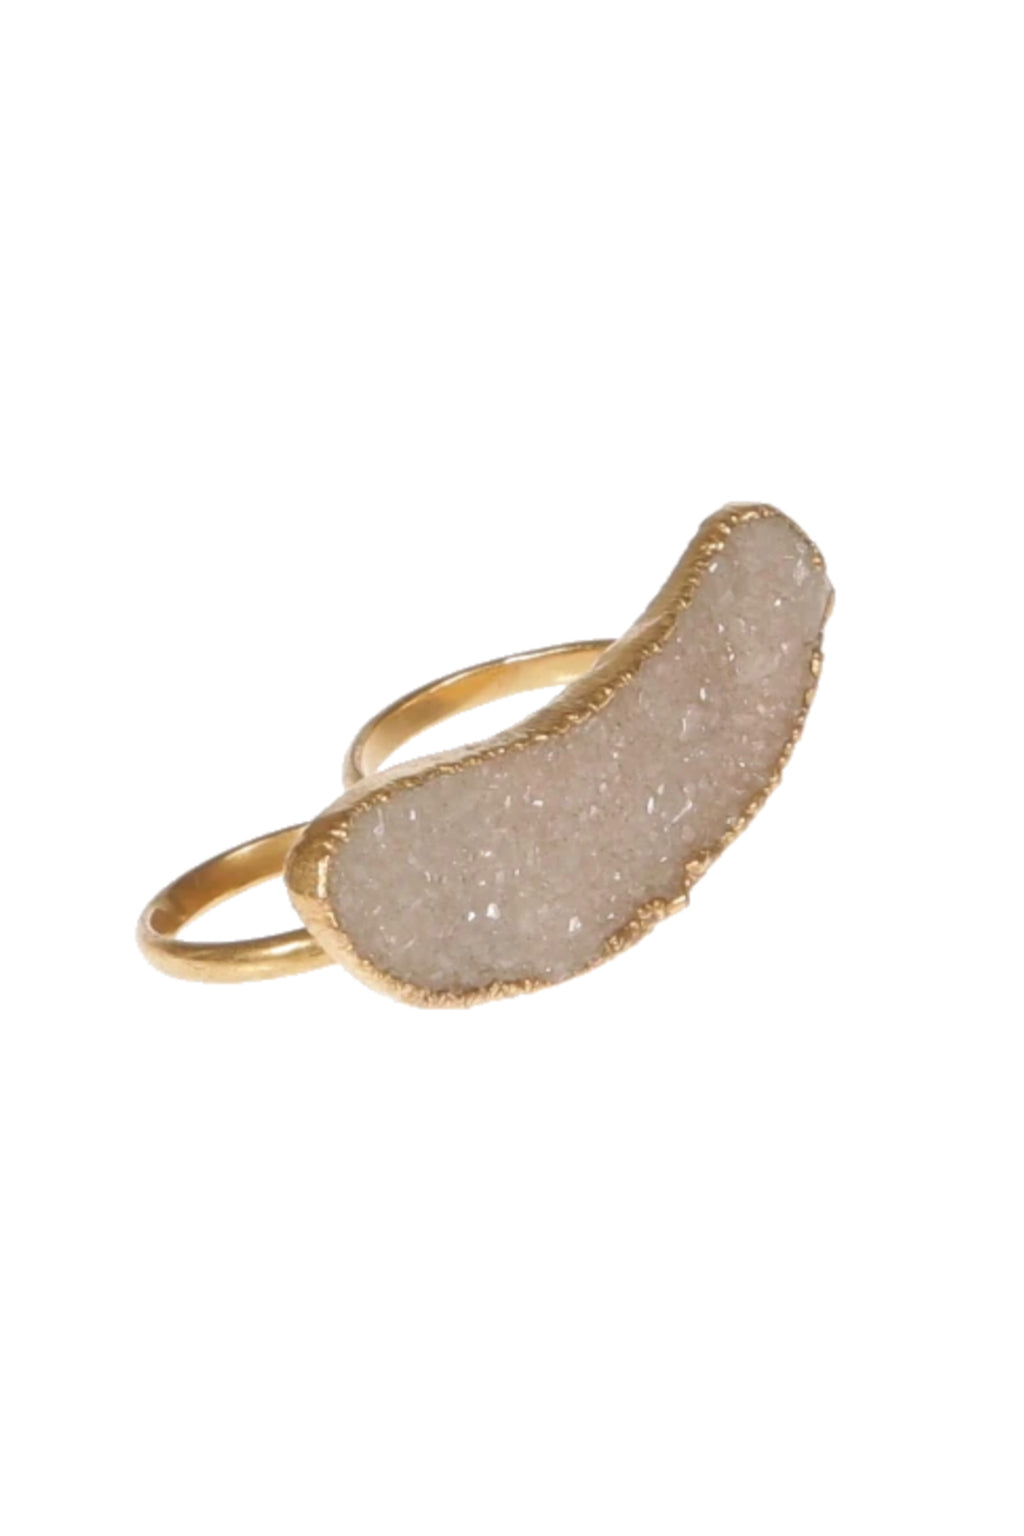 DUG UP NEW YORK | Yellow Gold, Druzy Agate Double Ring